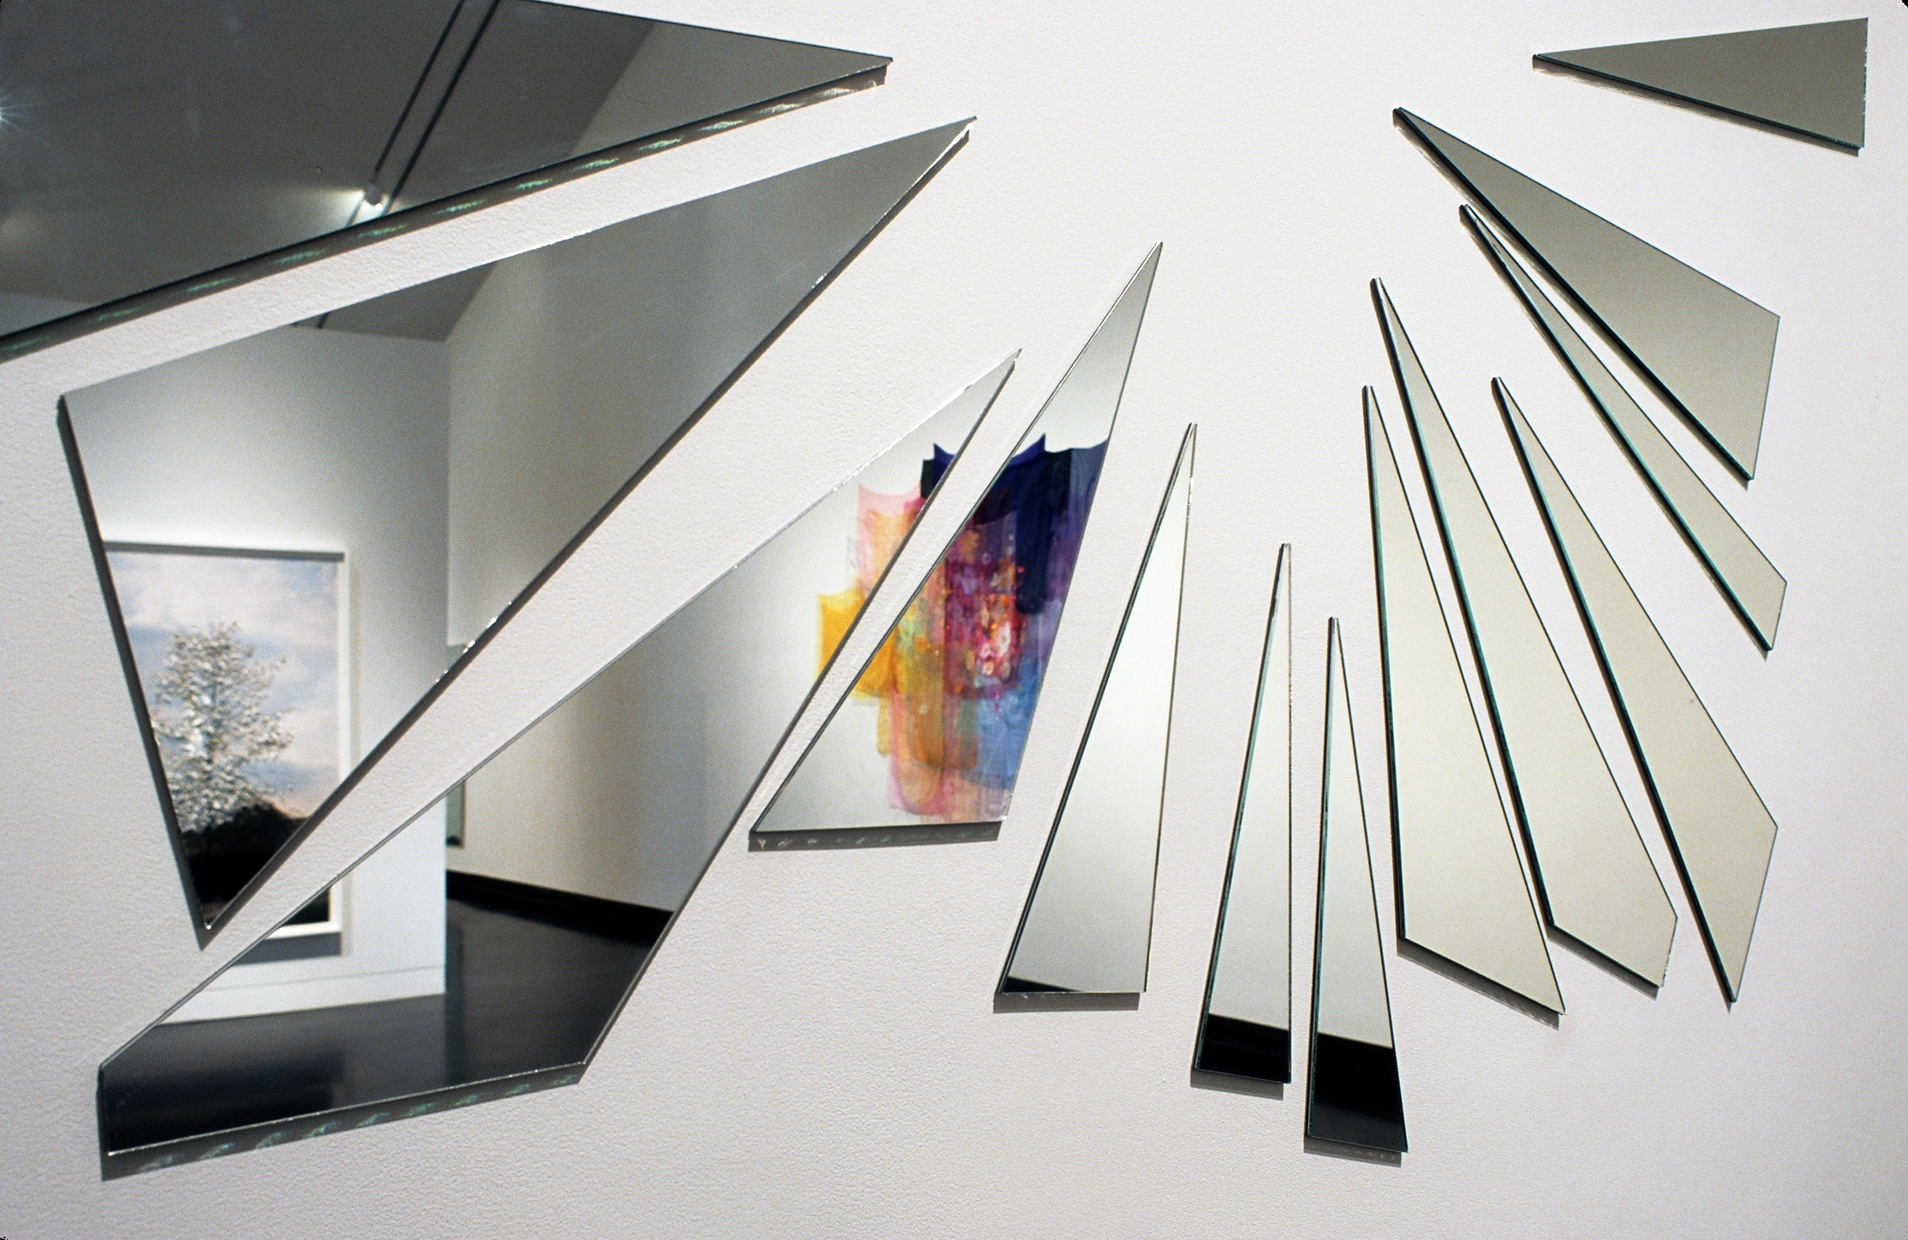 Thirteen triangular pieces of mirror hanging on a wall in a geometric pattern reflecting a gallery space.